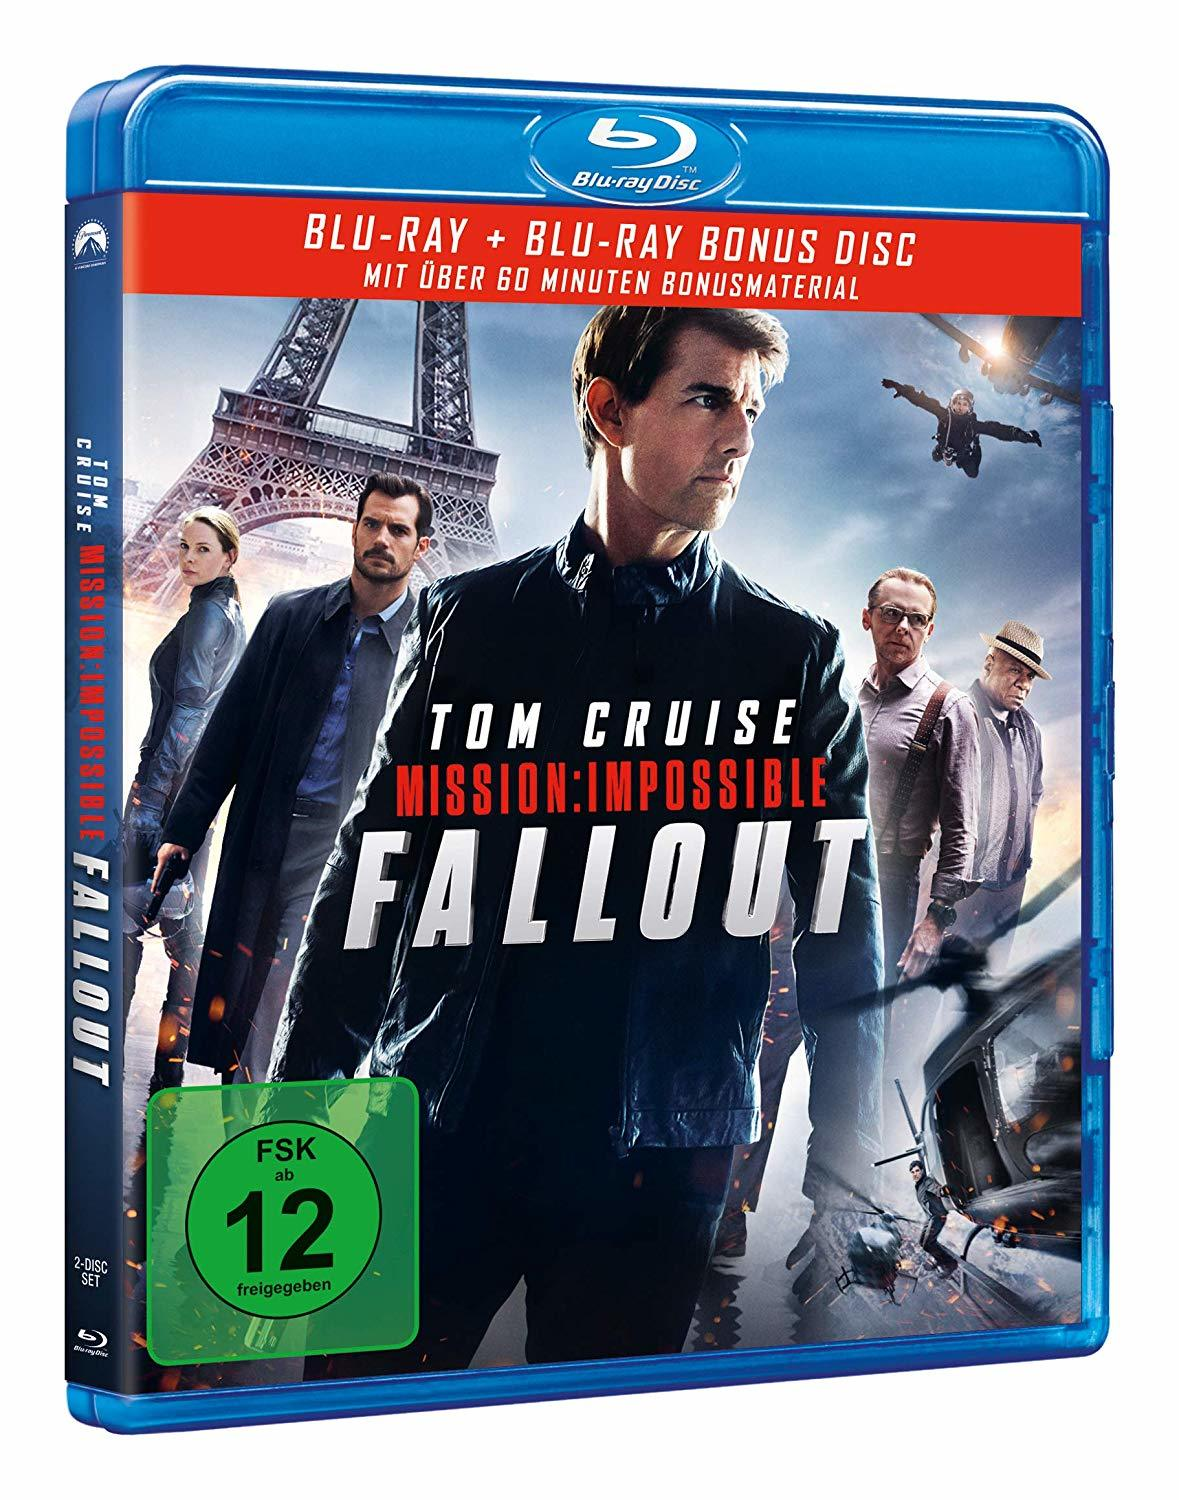 Download Mission Impossible Fallout 2018 x264 720p Esub BluRay Dual Audio Torrent